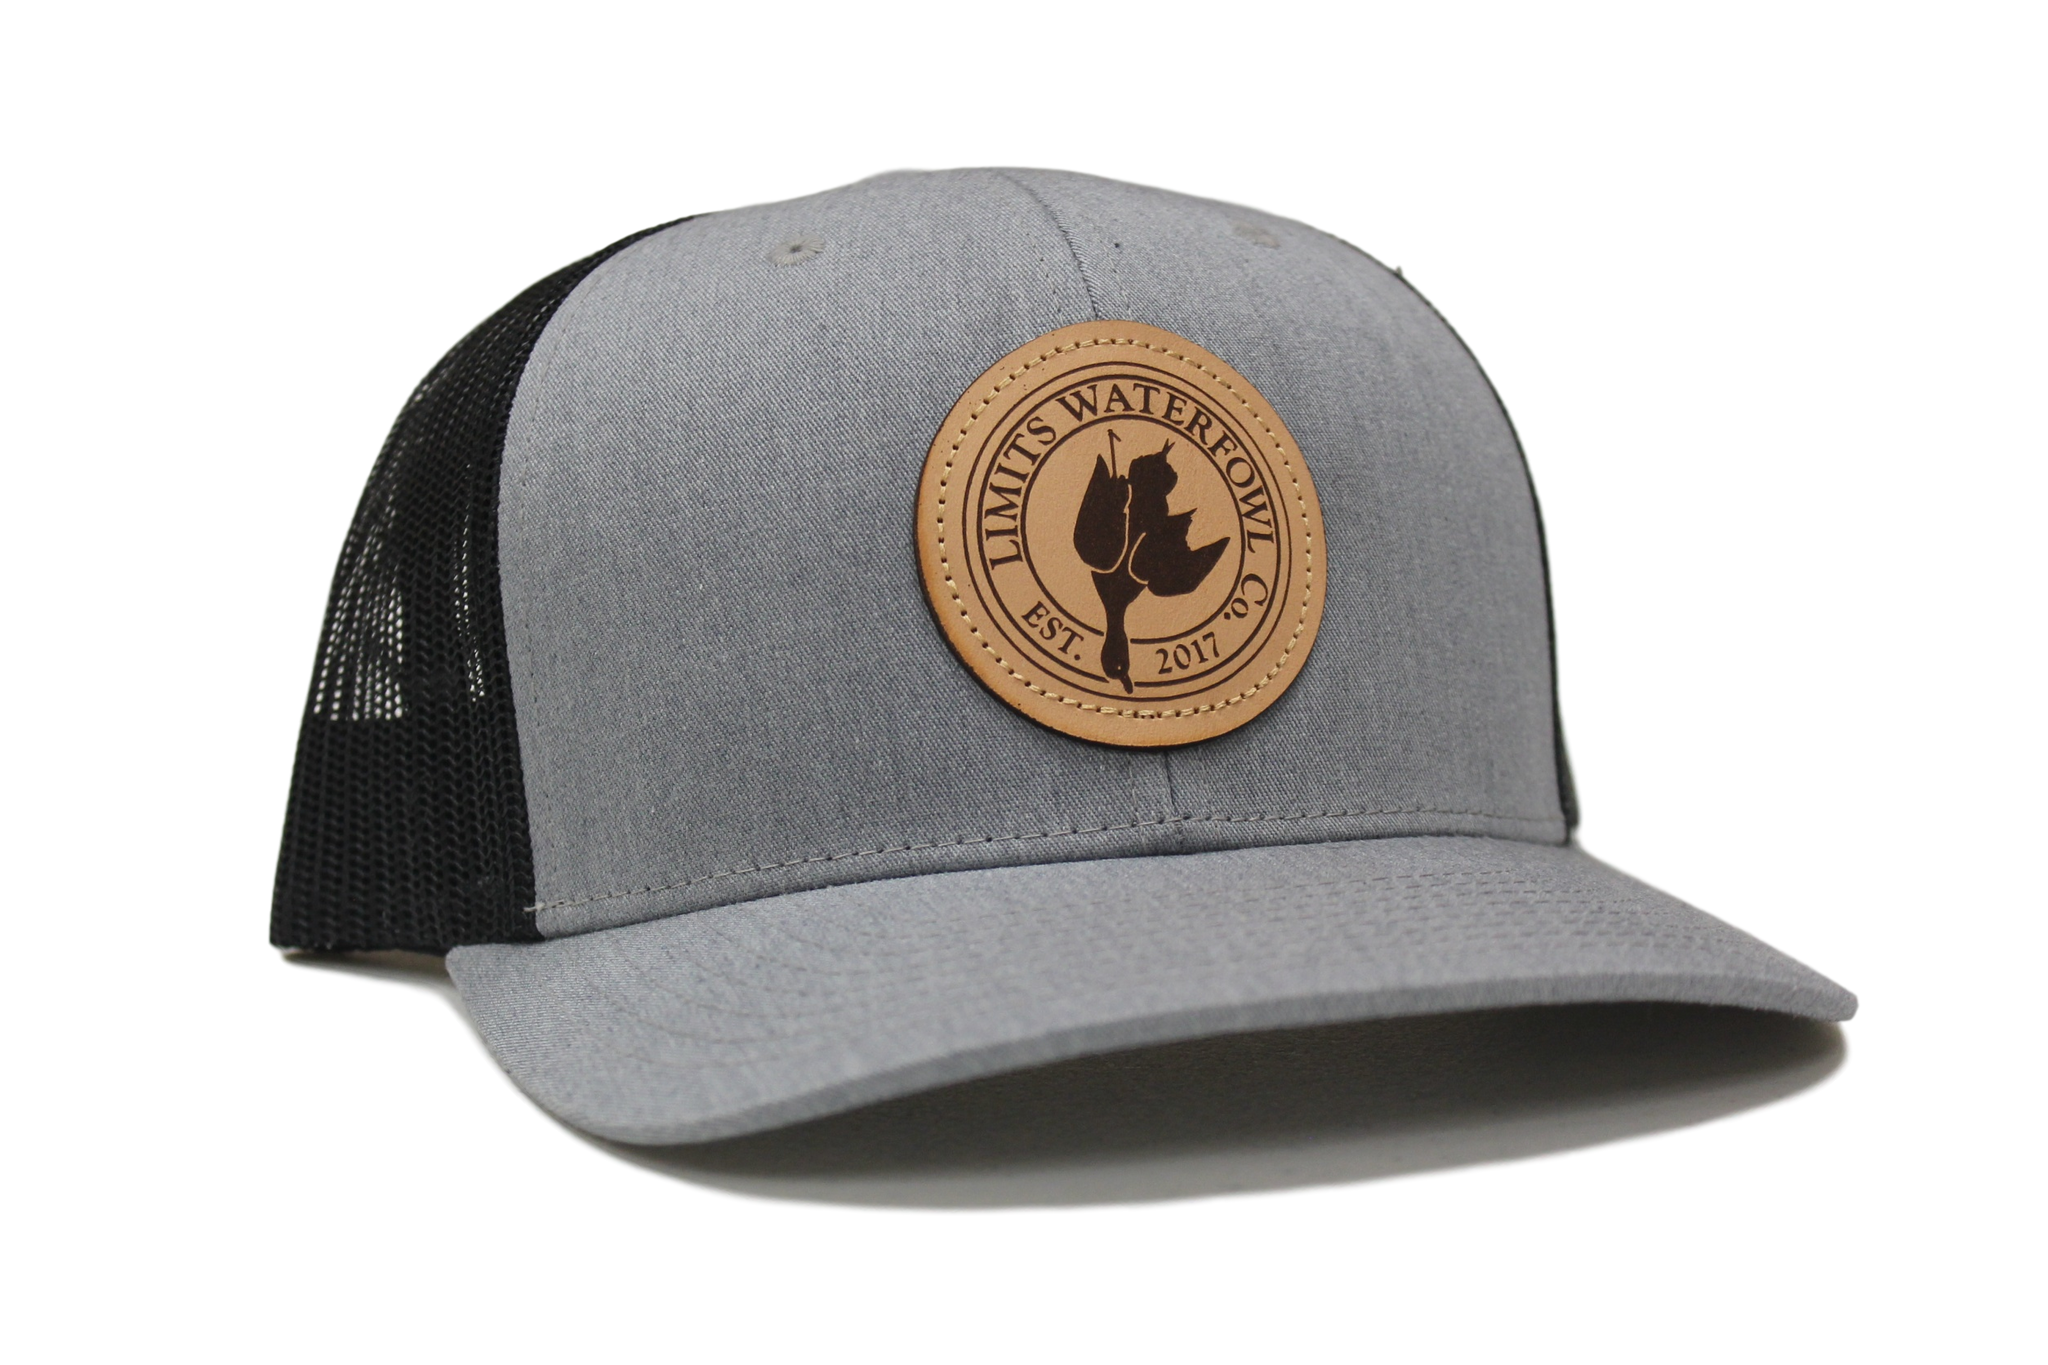 Leather Patch Logo Trucker-Gray and Black-hat-Limits Waterfowl Co.- 0cfbc2388bf